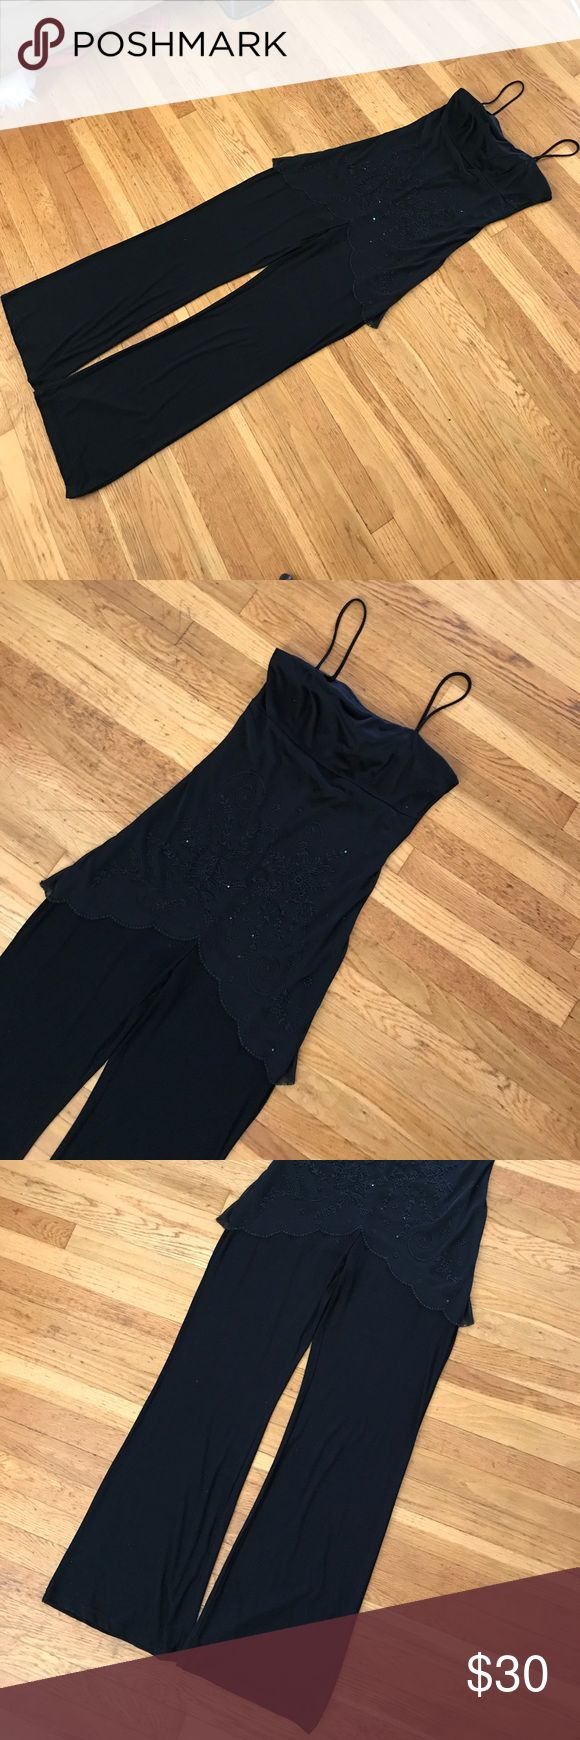 Black jumpsuit ! 🖤🖤 This jumpsuit is perfect for any woman that wants to look great, while being comfortable too ! Has very detailed beading in the front . Spaghetti straps for simplicity. This will show off your collar bones ! 🖤since it's black it will also Elongate your legs girls only Pants Jumpsuits & Rompers